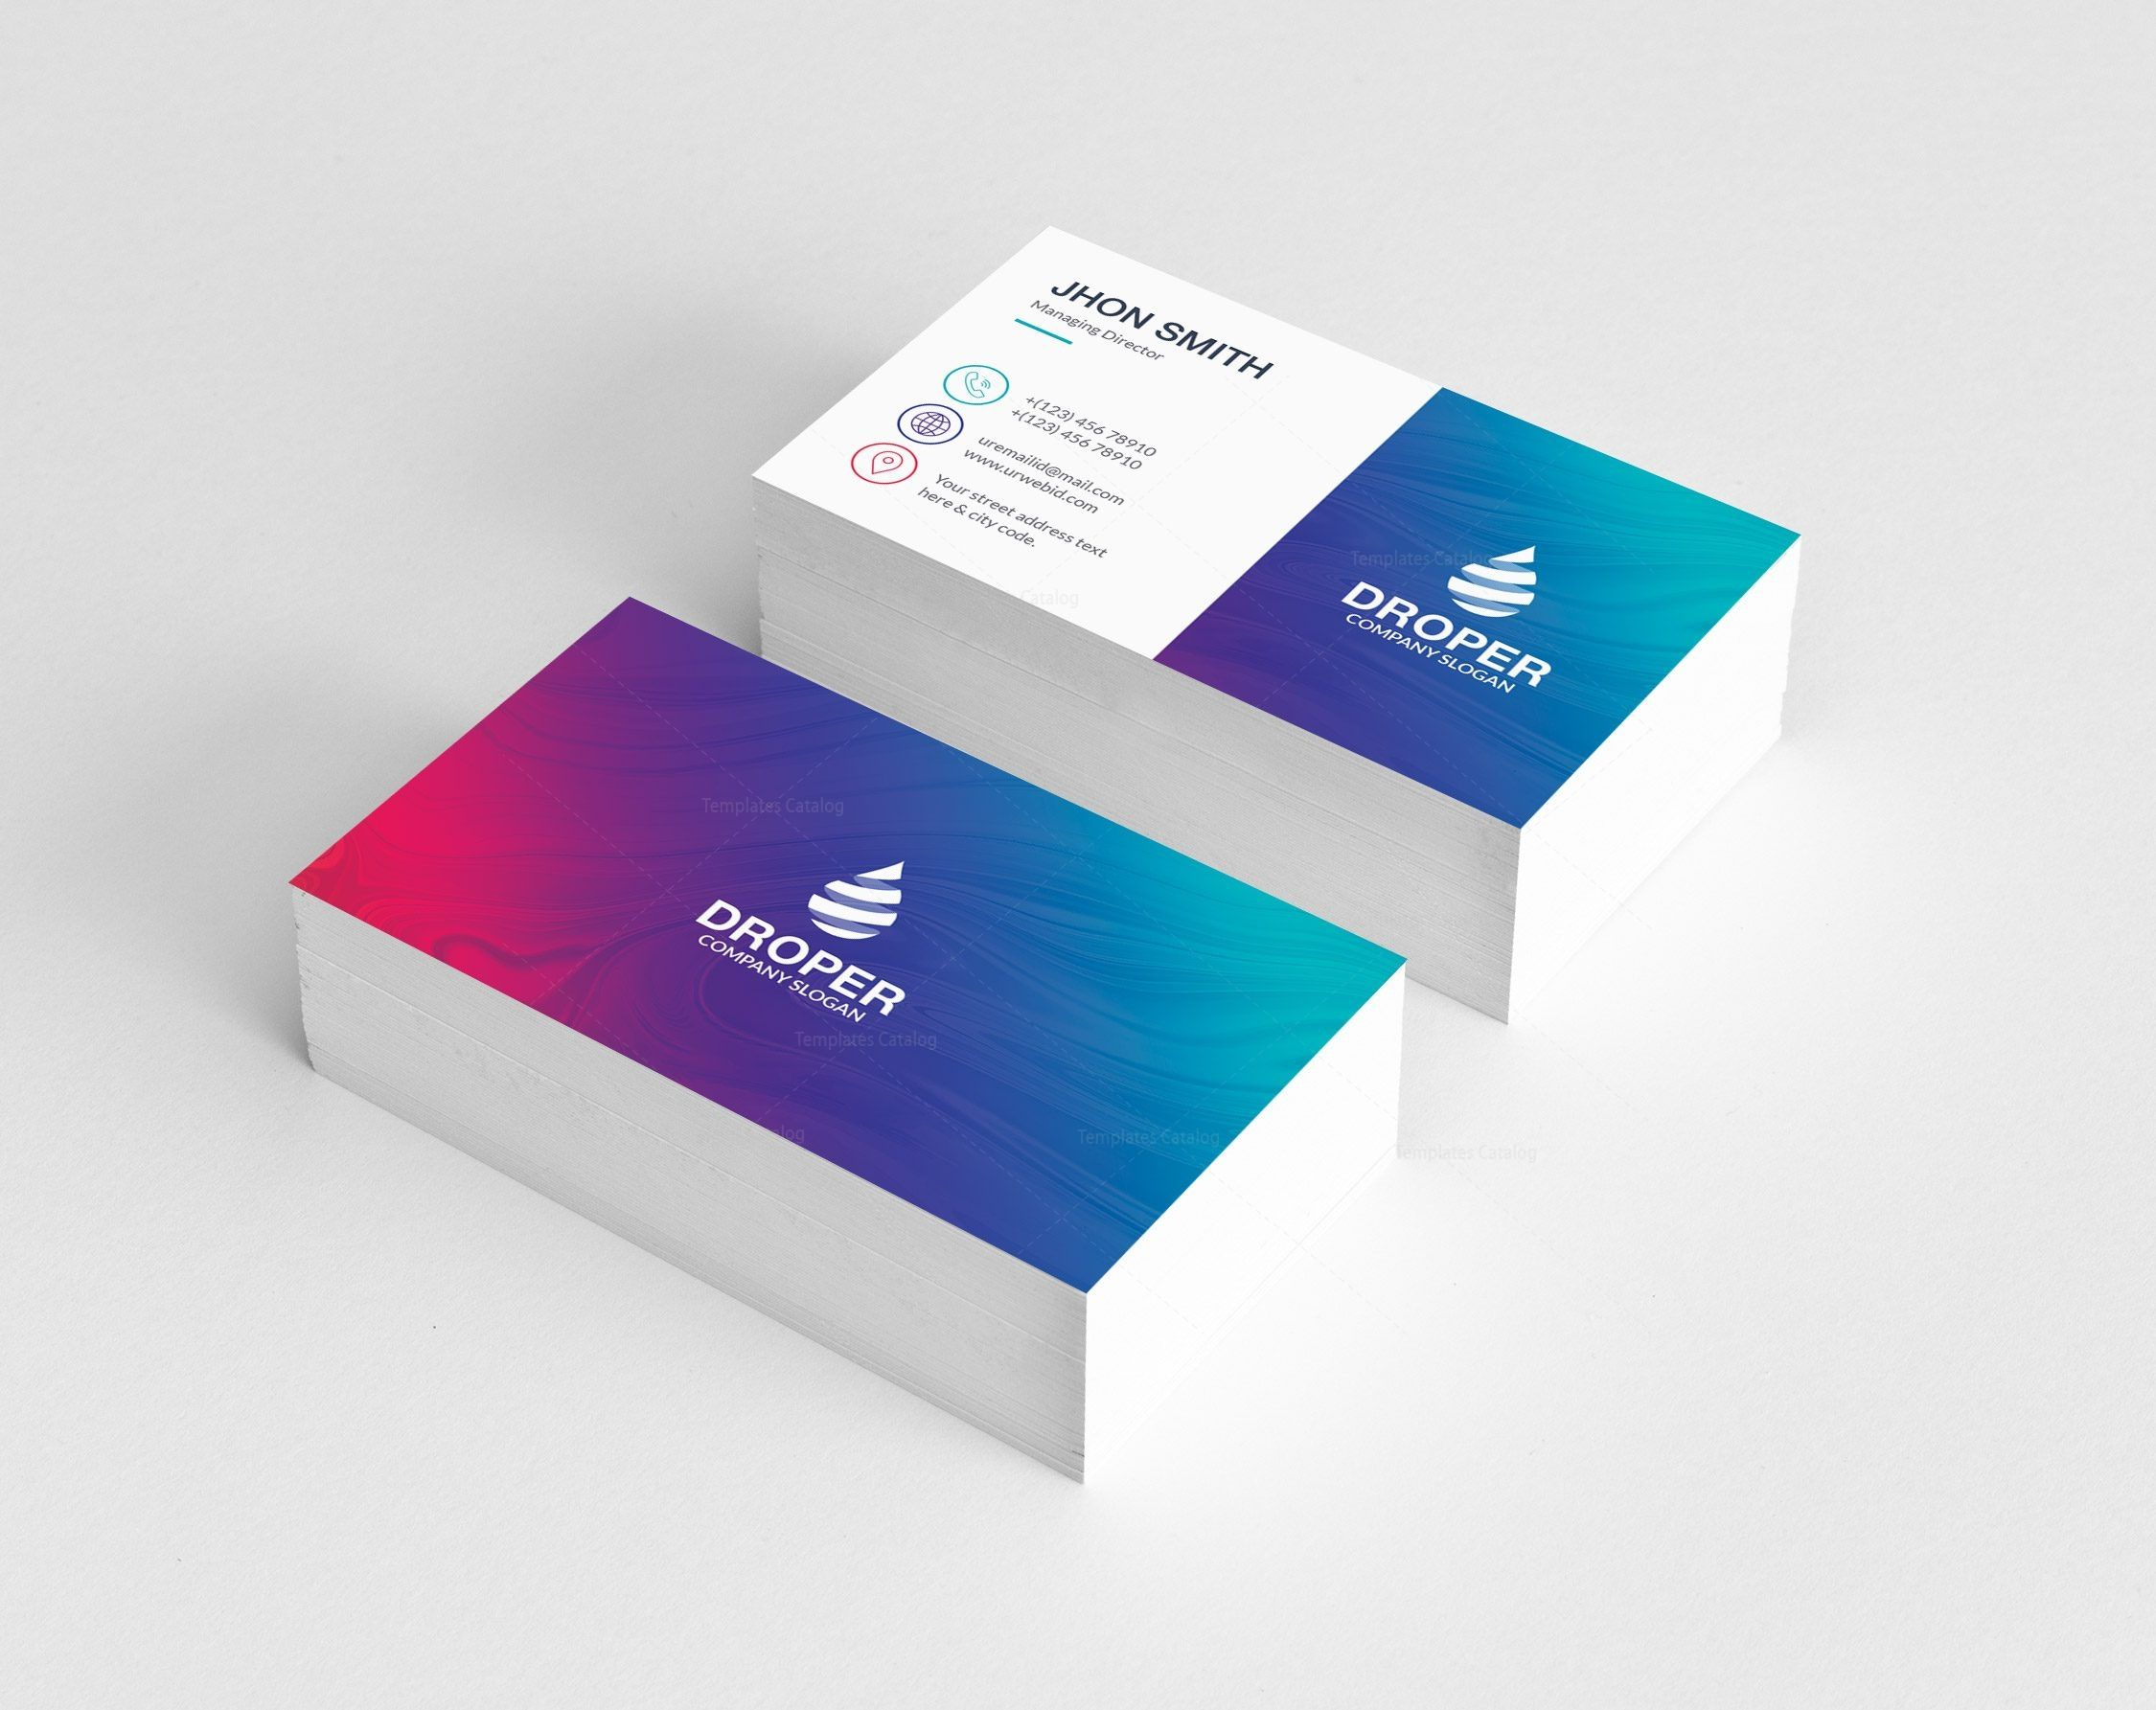 Art Stylish Business Card Design Graphic Templates Stylish Business Cards Business Card Design Printing Business Cards